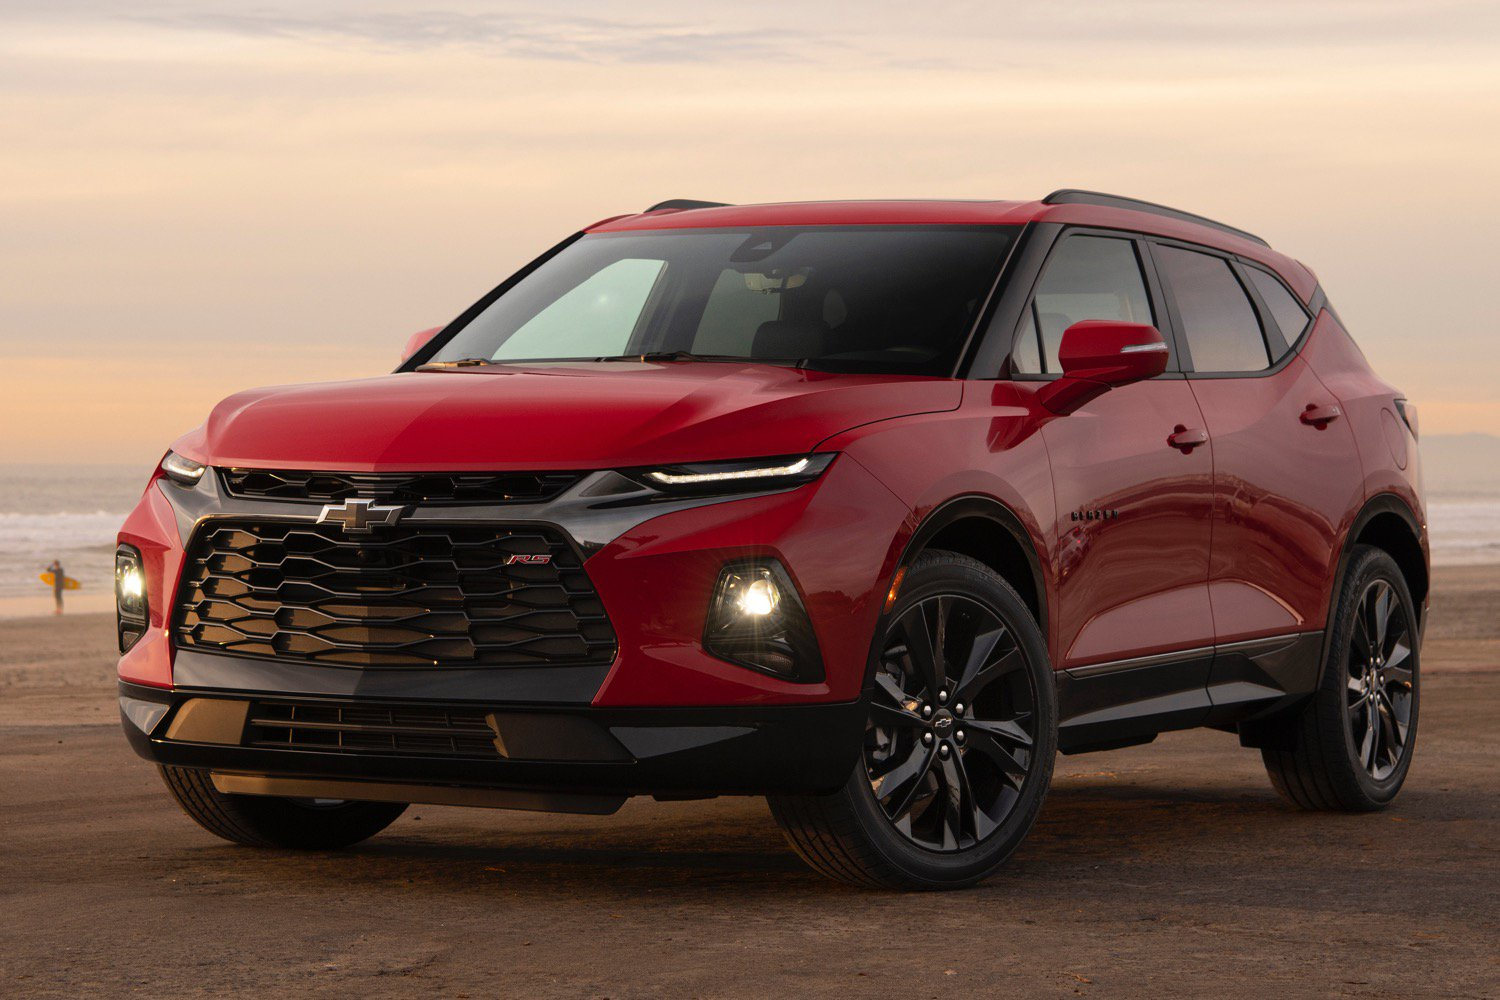 2021 chevrolet blazer dimensions, dealer, deals | 2022 chevy